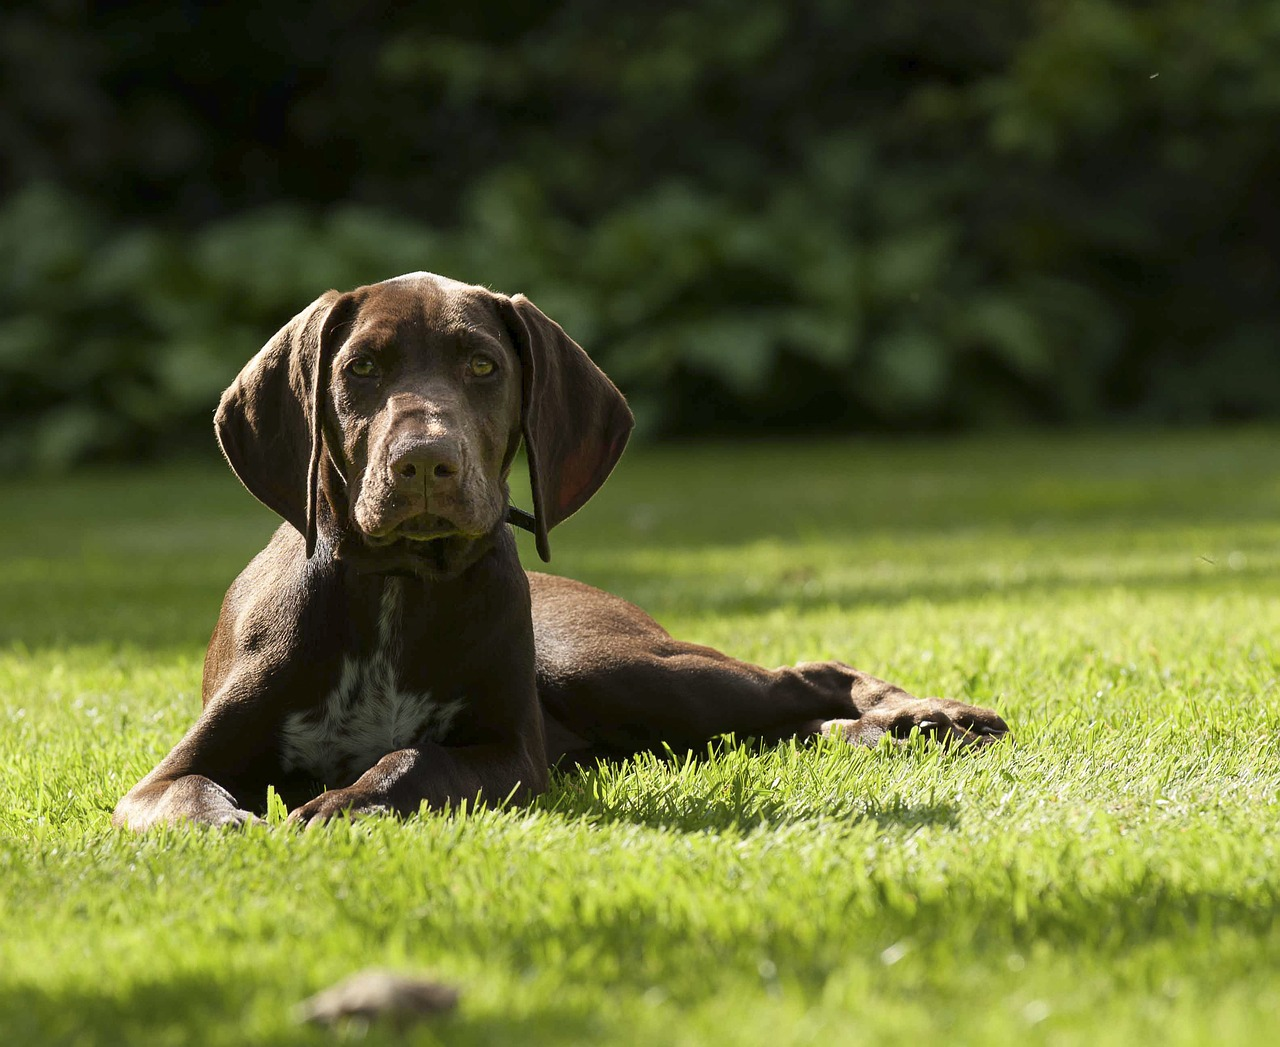 A brown German Shorthaired Pointer lying down in grass.